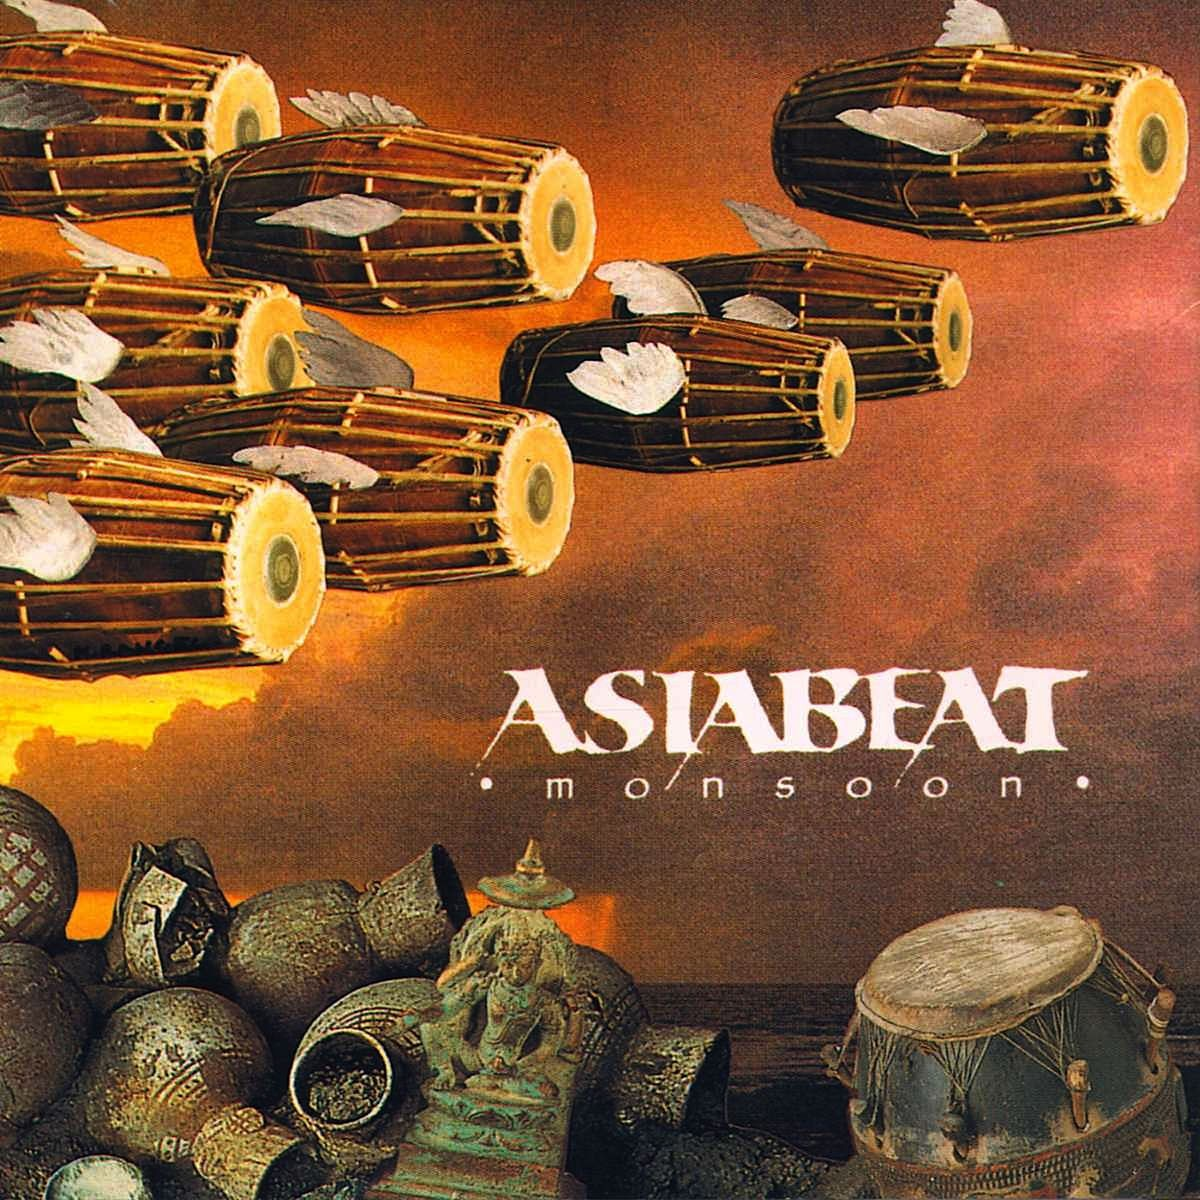 Asiabeat - Monsoon CD - MOU41772